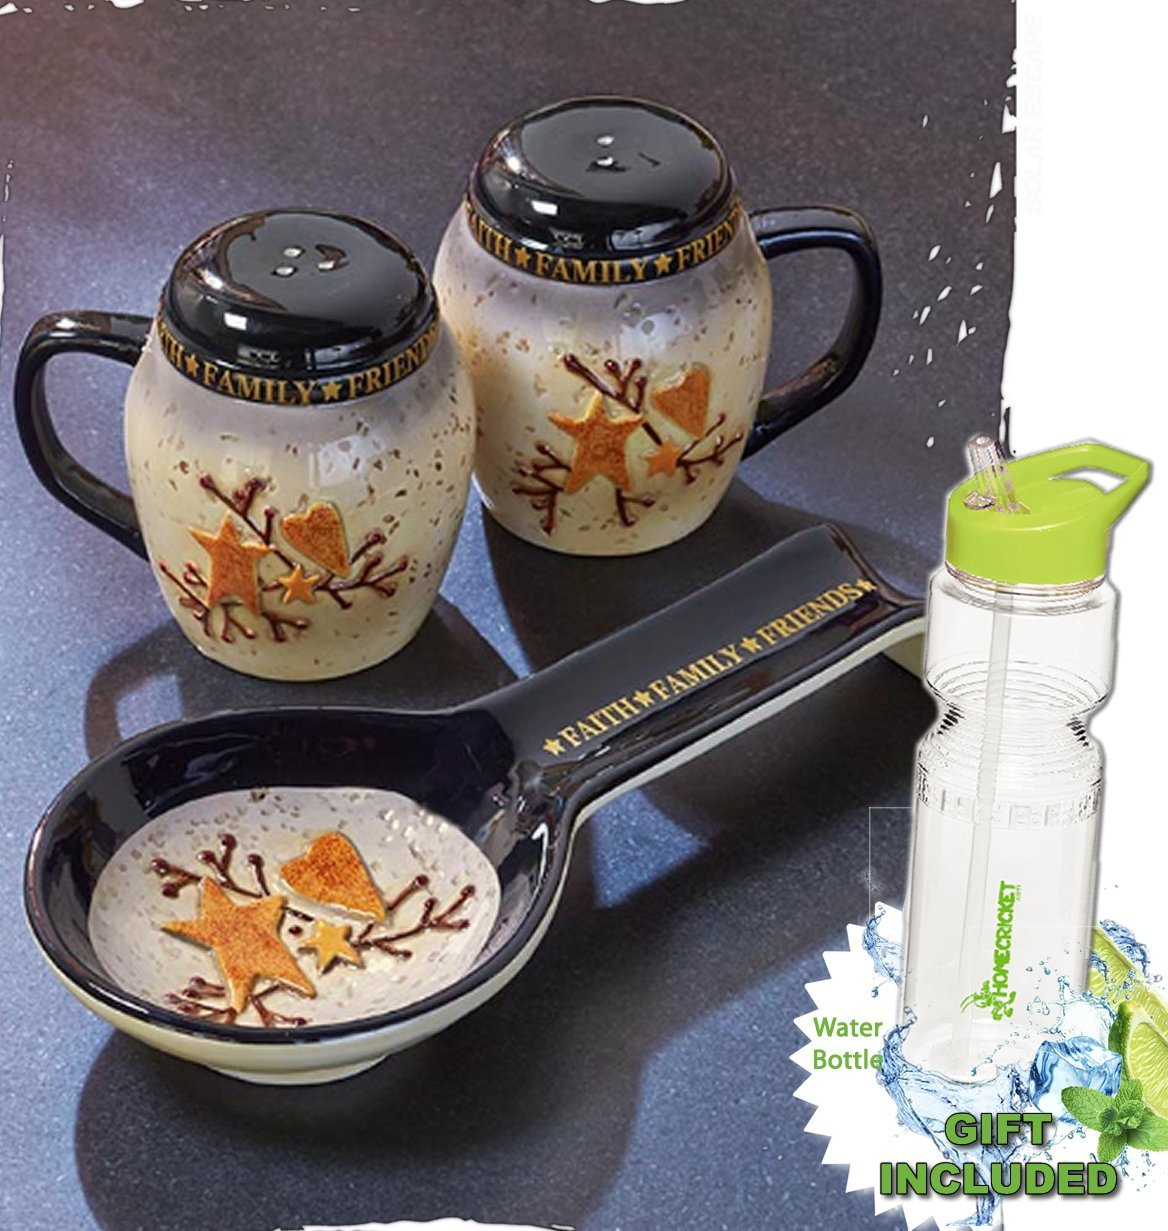 Gift Included- Country Kitchen Hearts and Stars Salt & Pepper Spoon Rest Set + FREE Bonus 23 oz Water Bottle byHomecricket